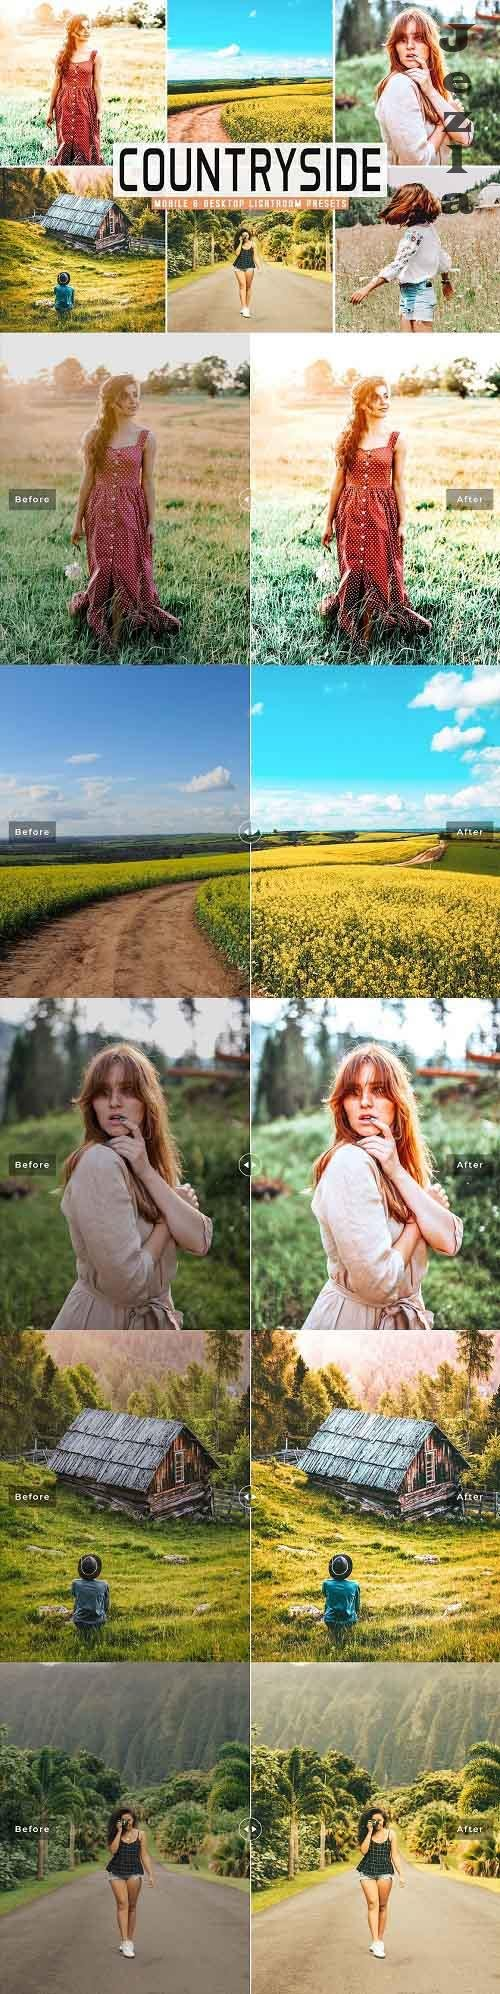 Countryside Pro LRM Presets - 5524086